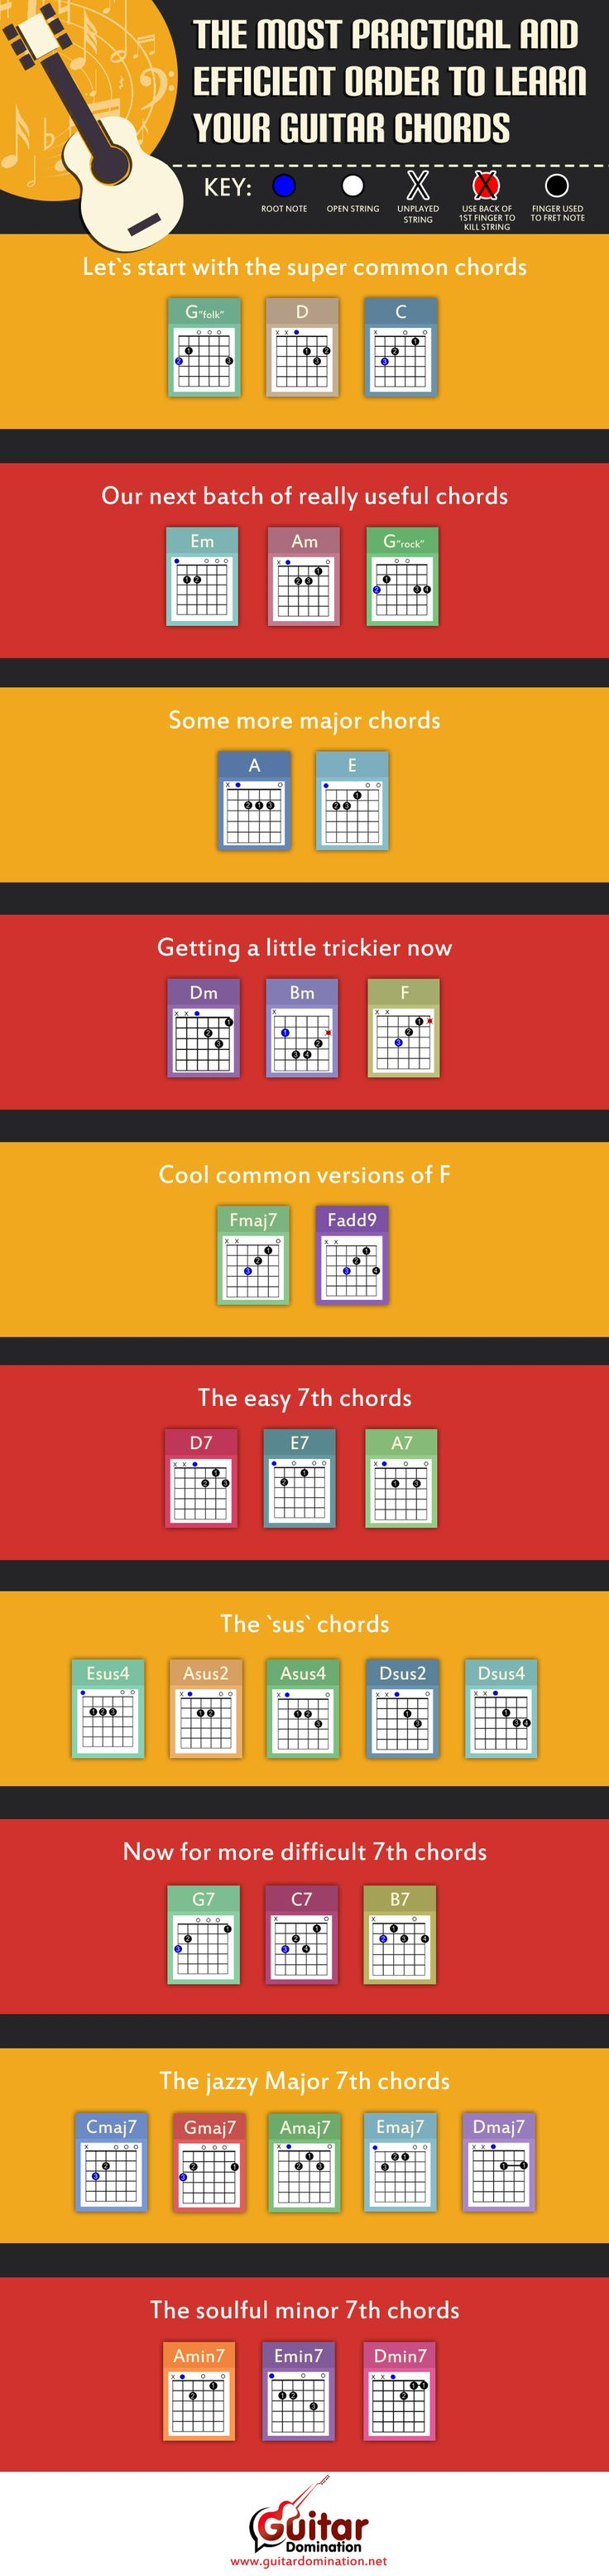 The Chords Every Guitarist Should Know: 32 Crucial Chord Shapes